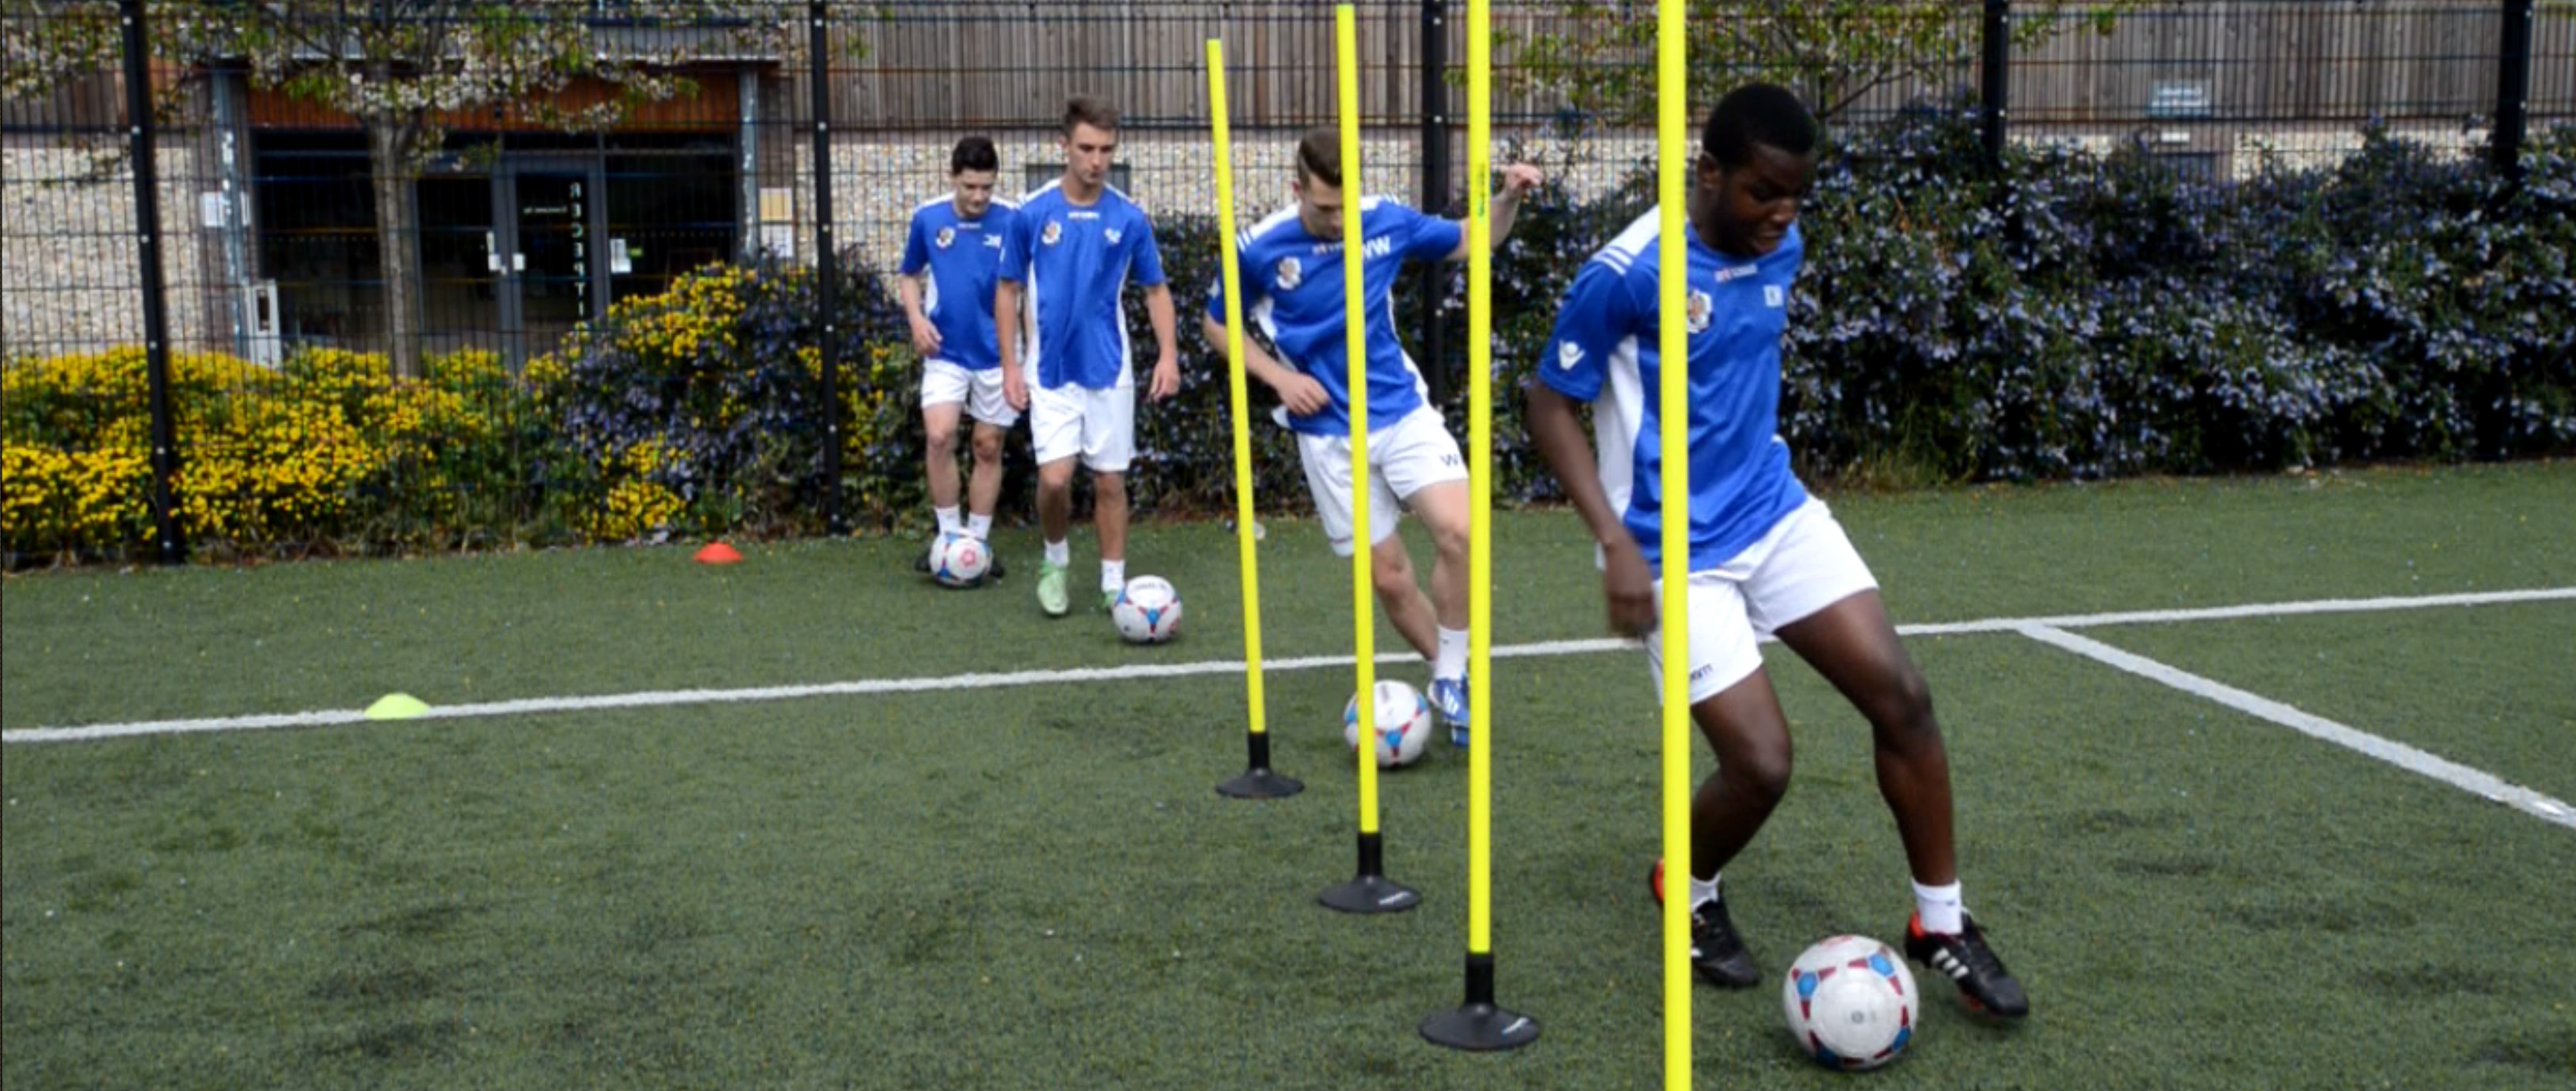 Dartford FC football Academy for 16-18 year olds run in partnership with SCL